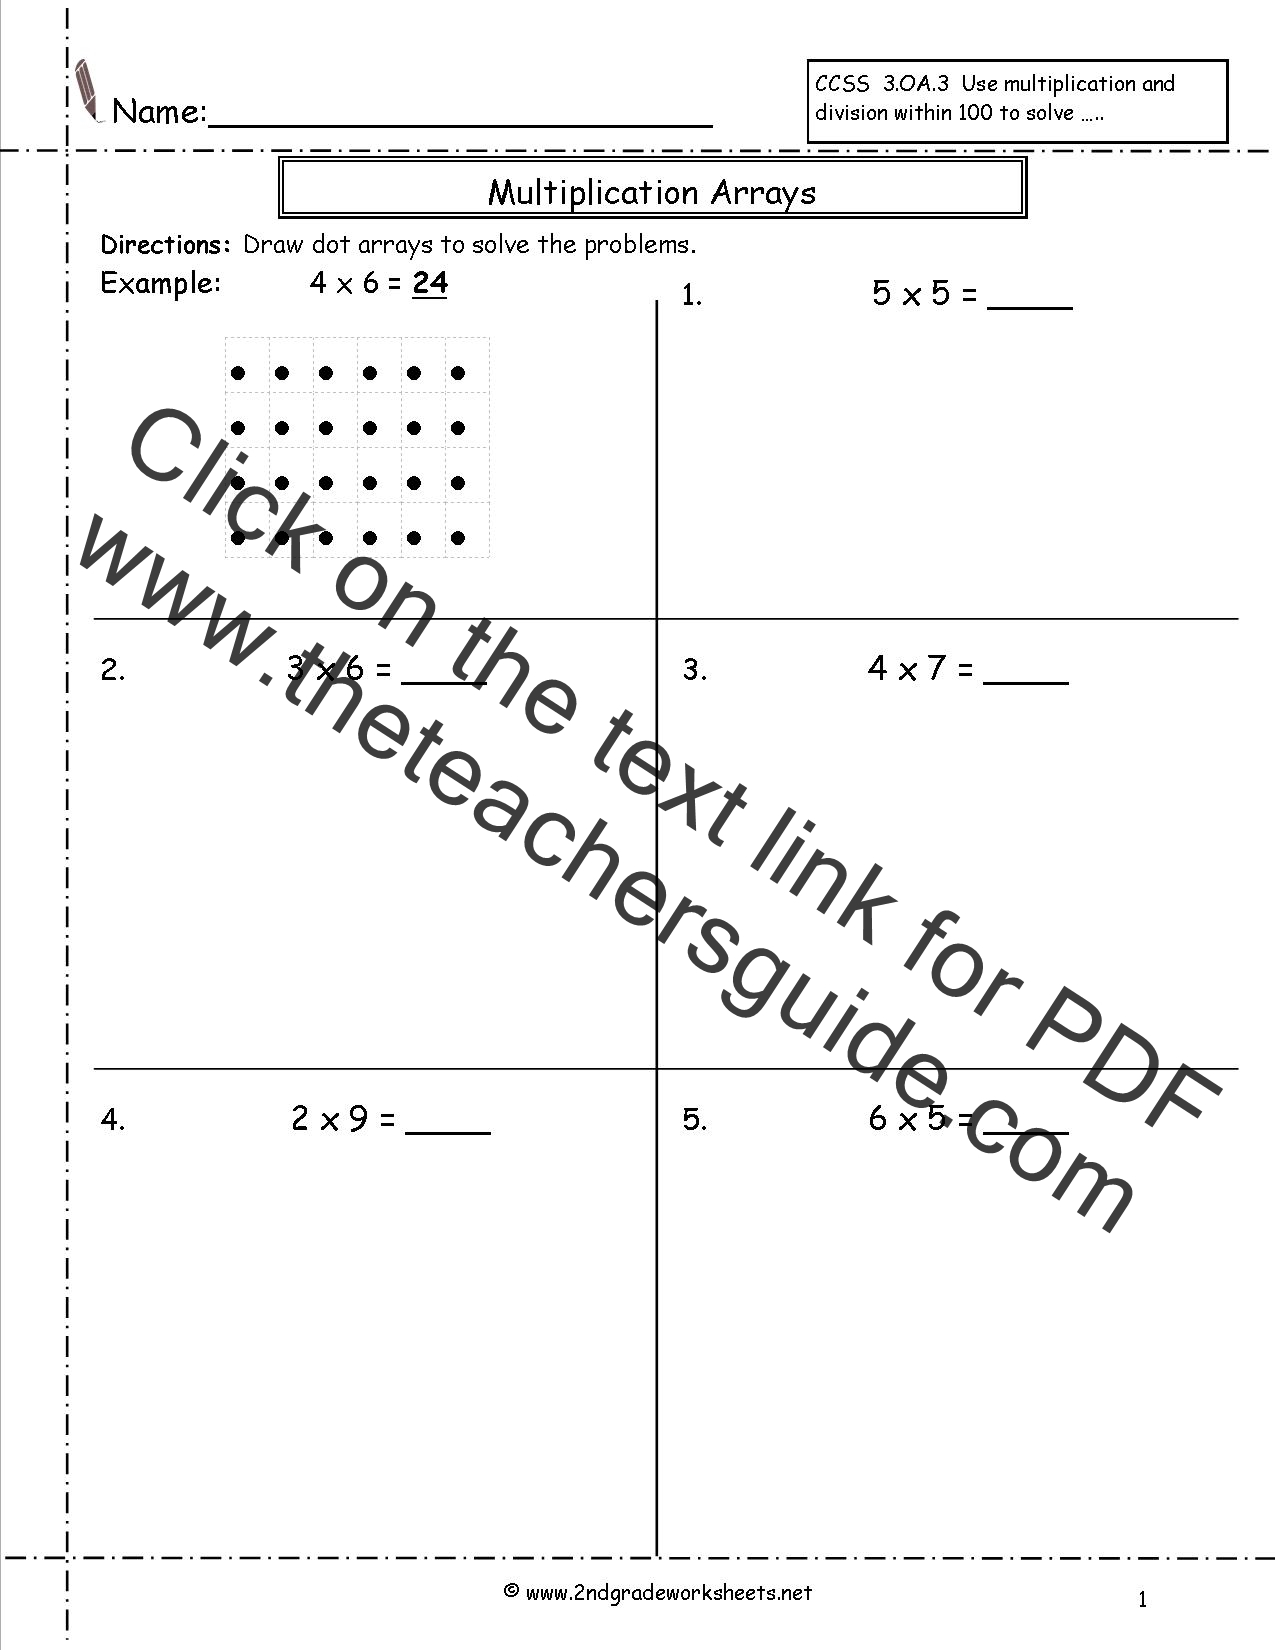 multiplication arrays worksheets multiplication array worksheets